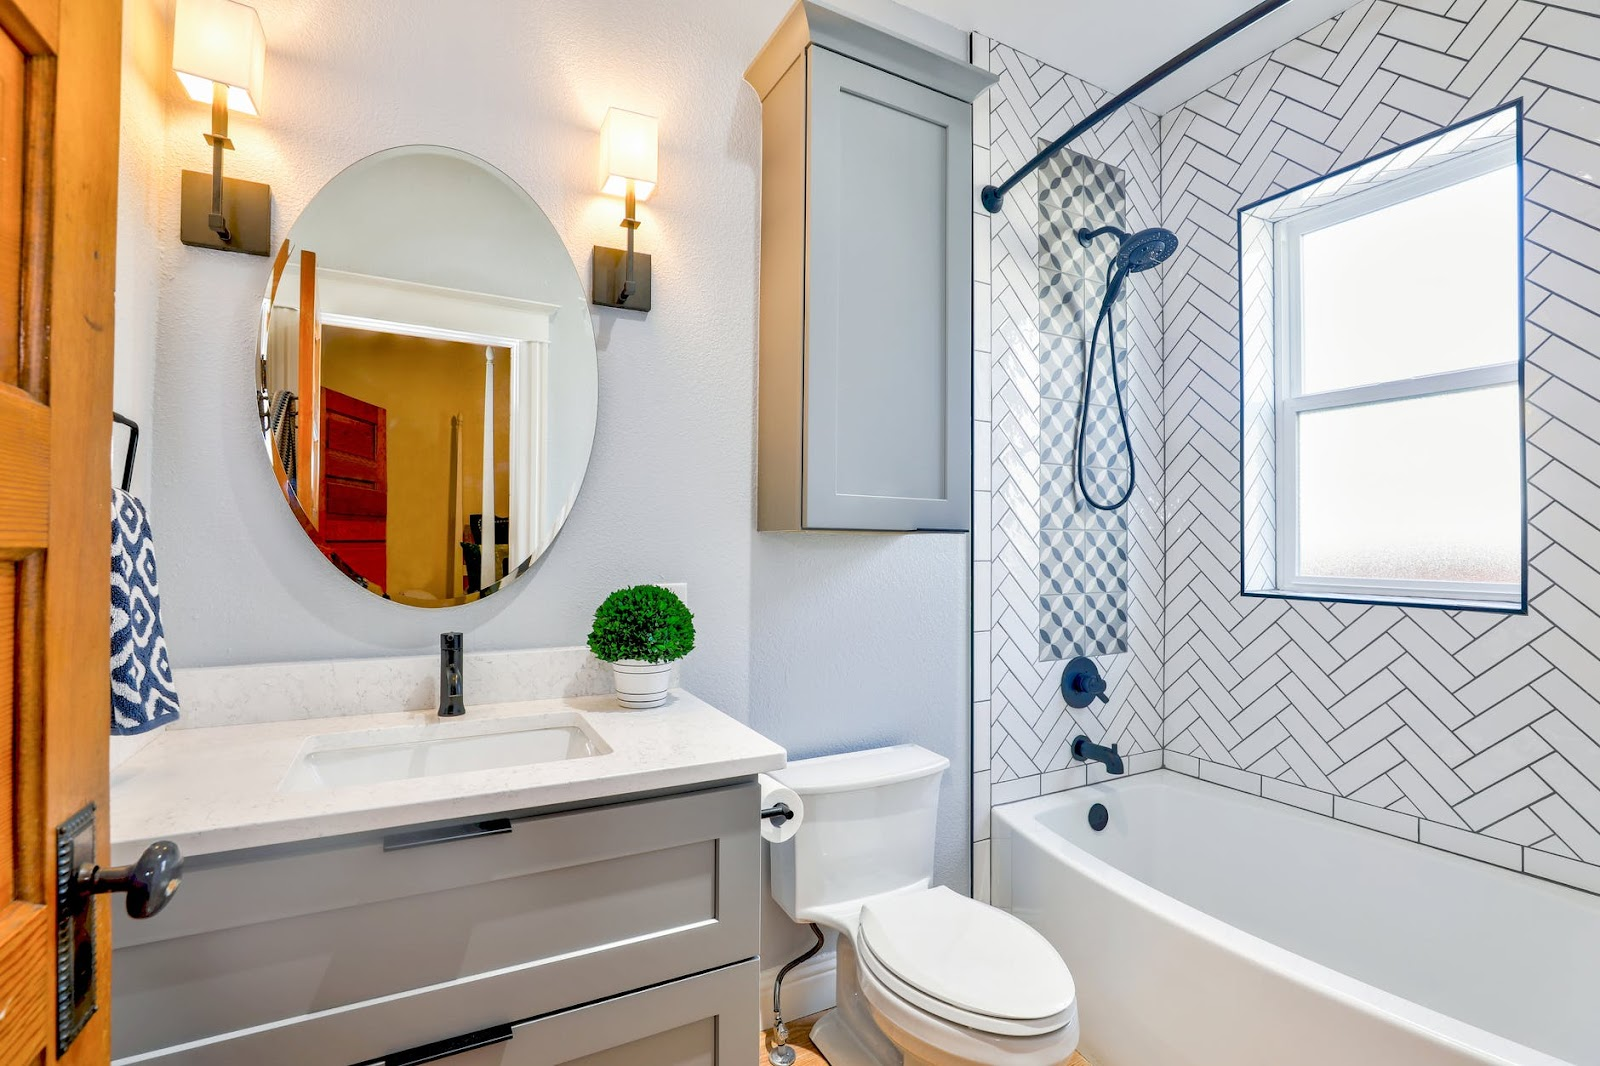 child-proofing your home - bathroom